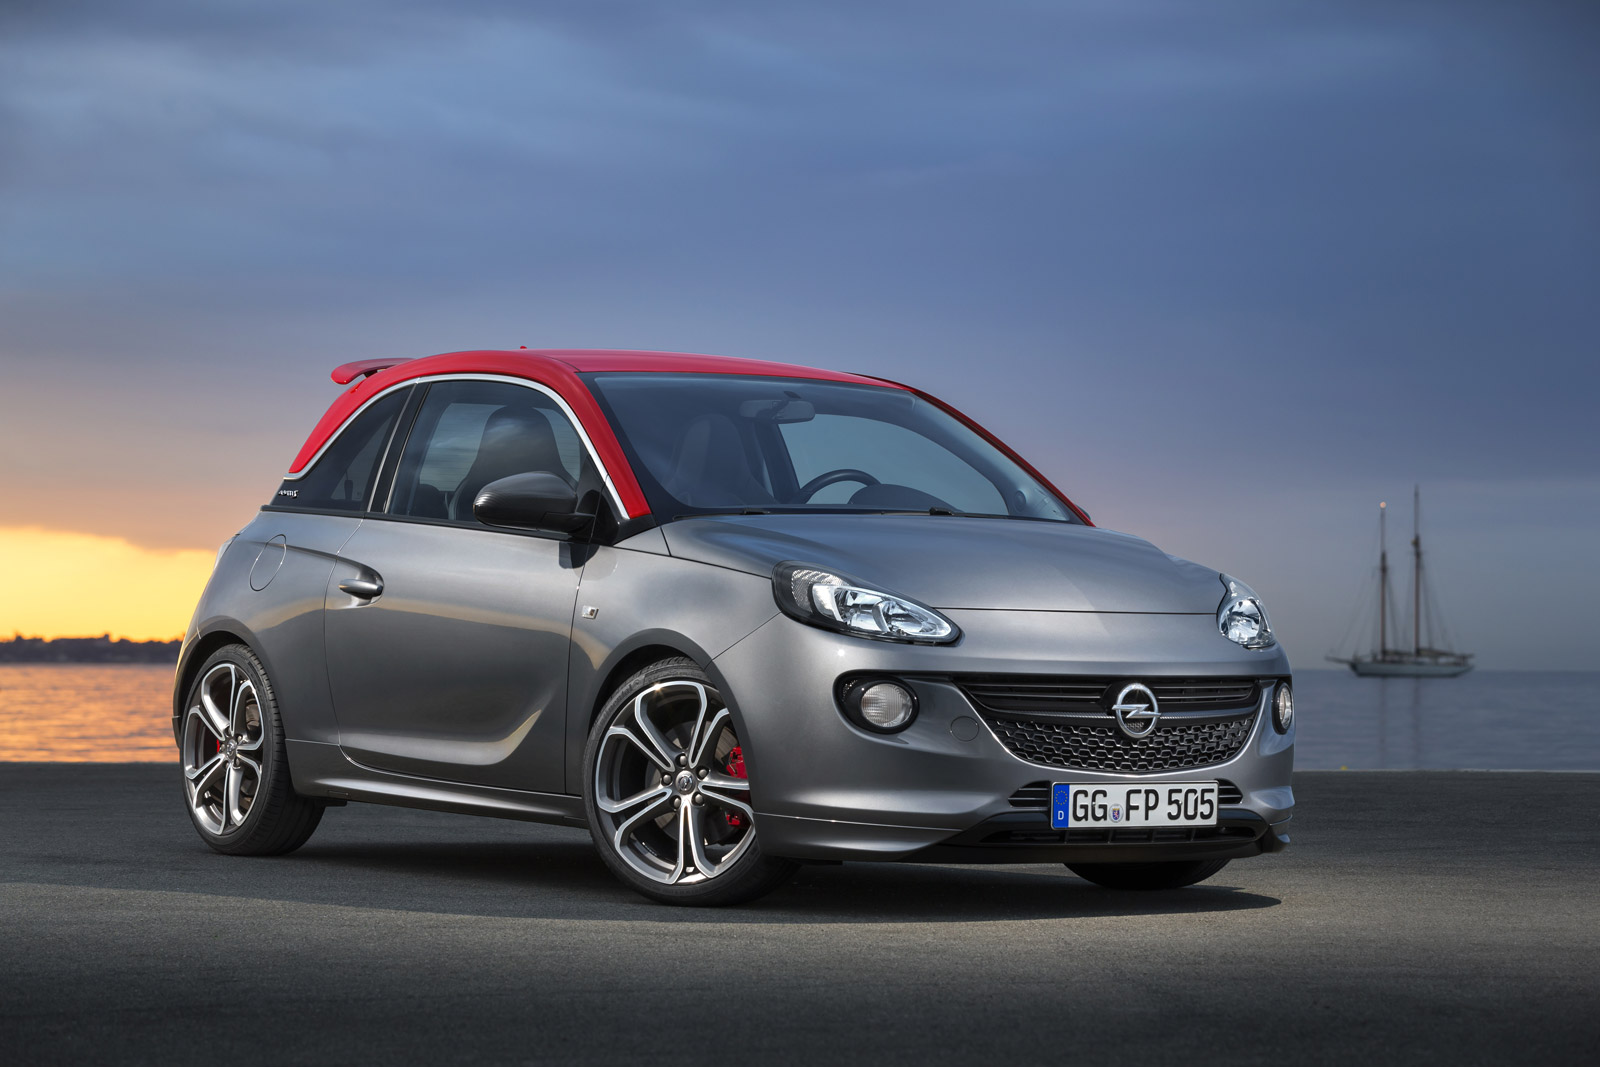 Future Buick Lineup May Include Next-Generation Opel Adam Minicar